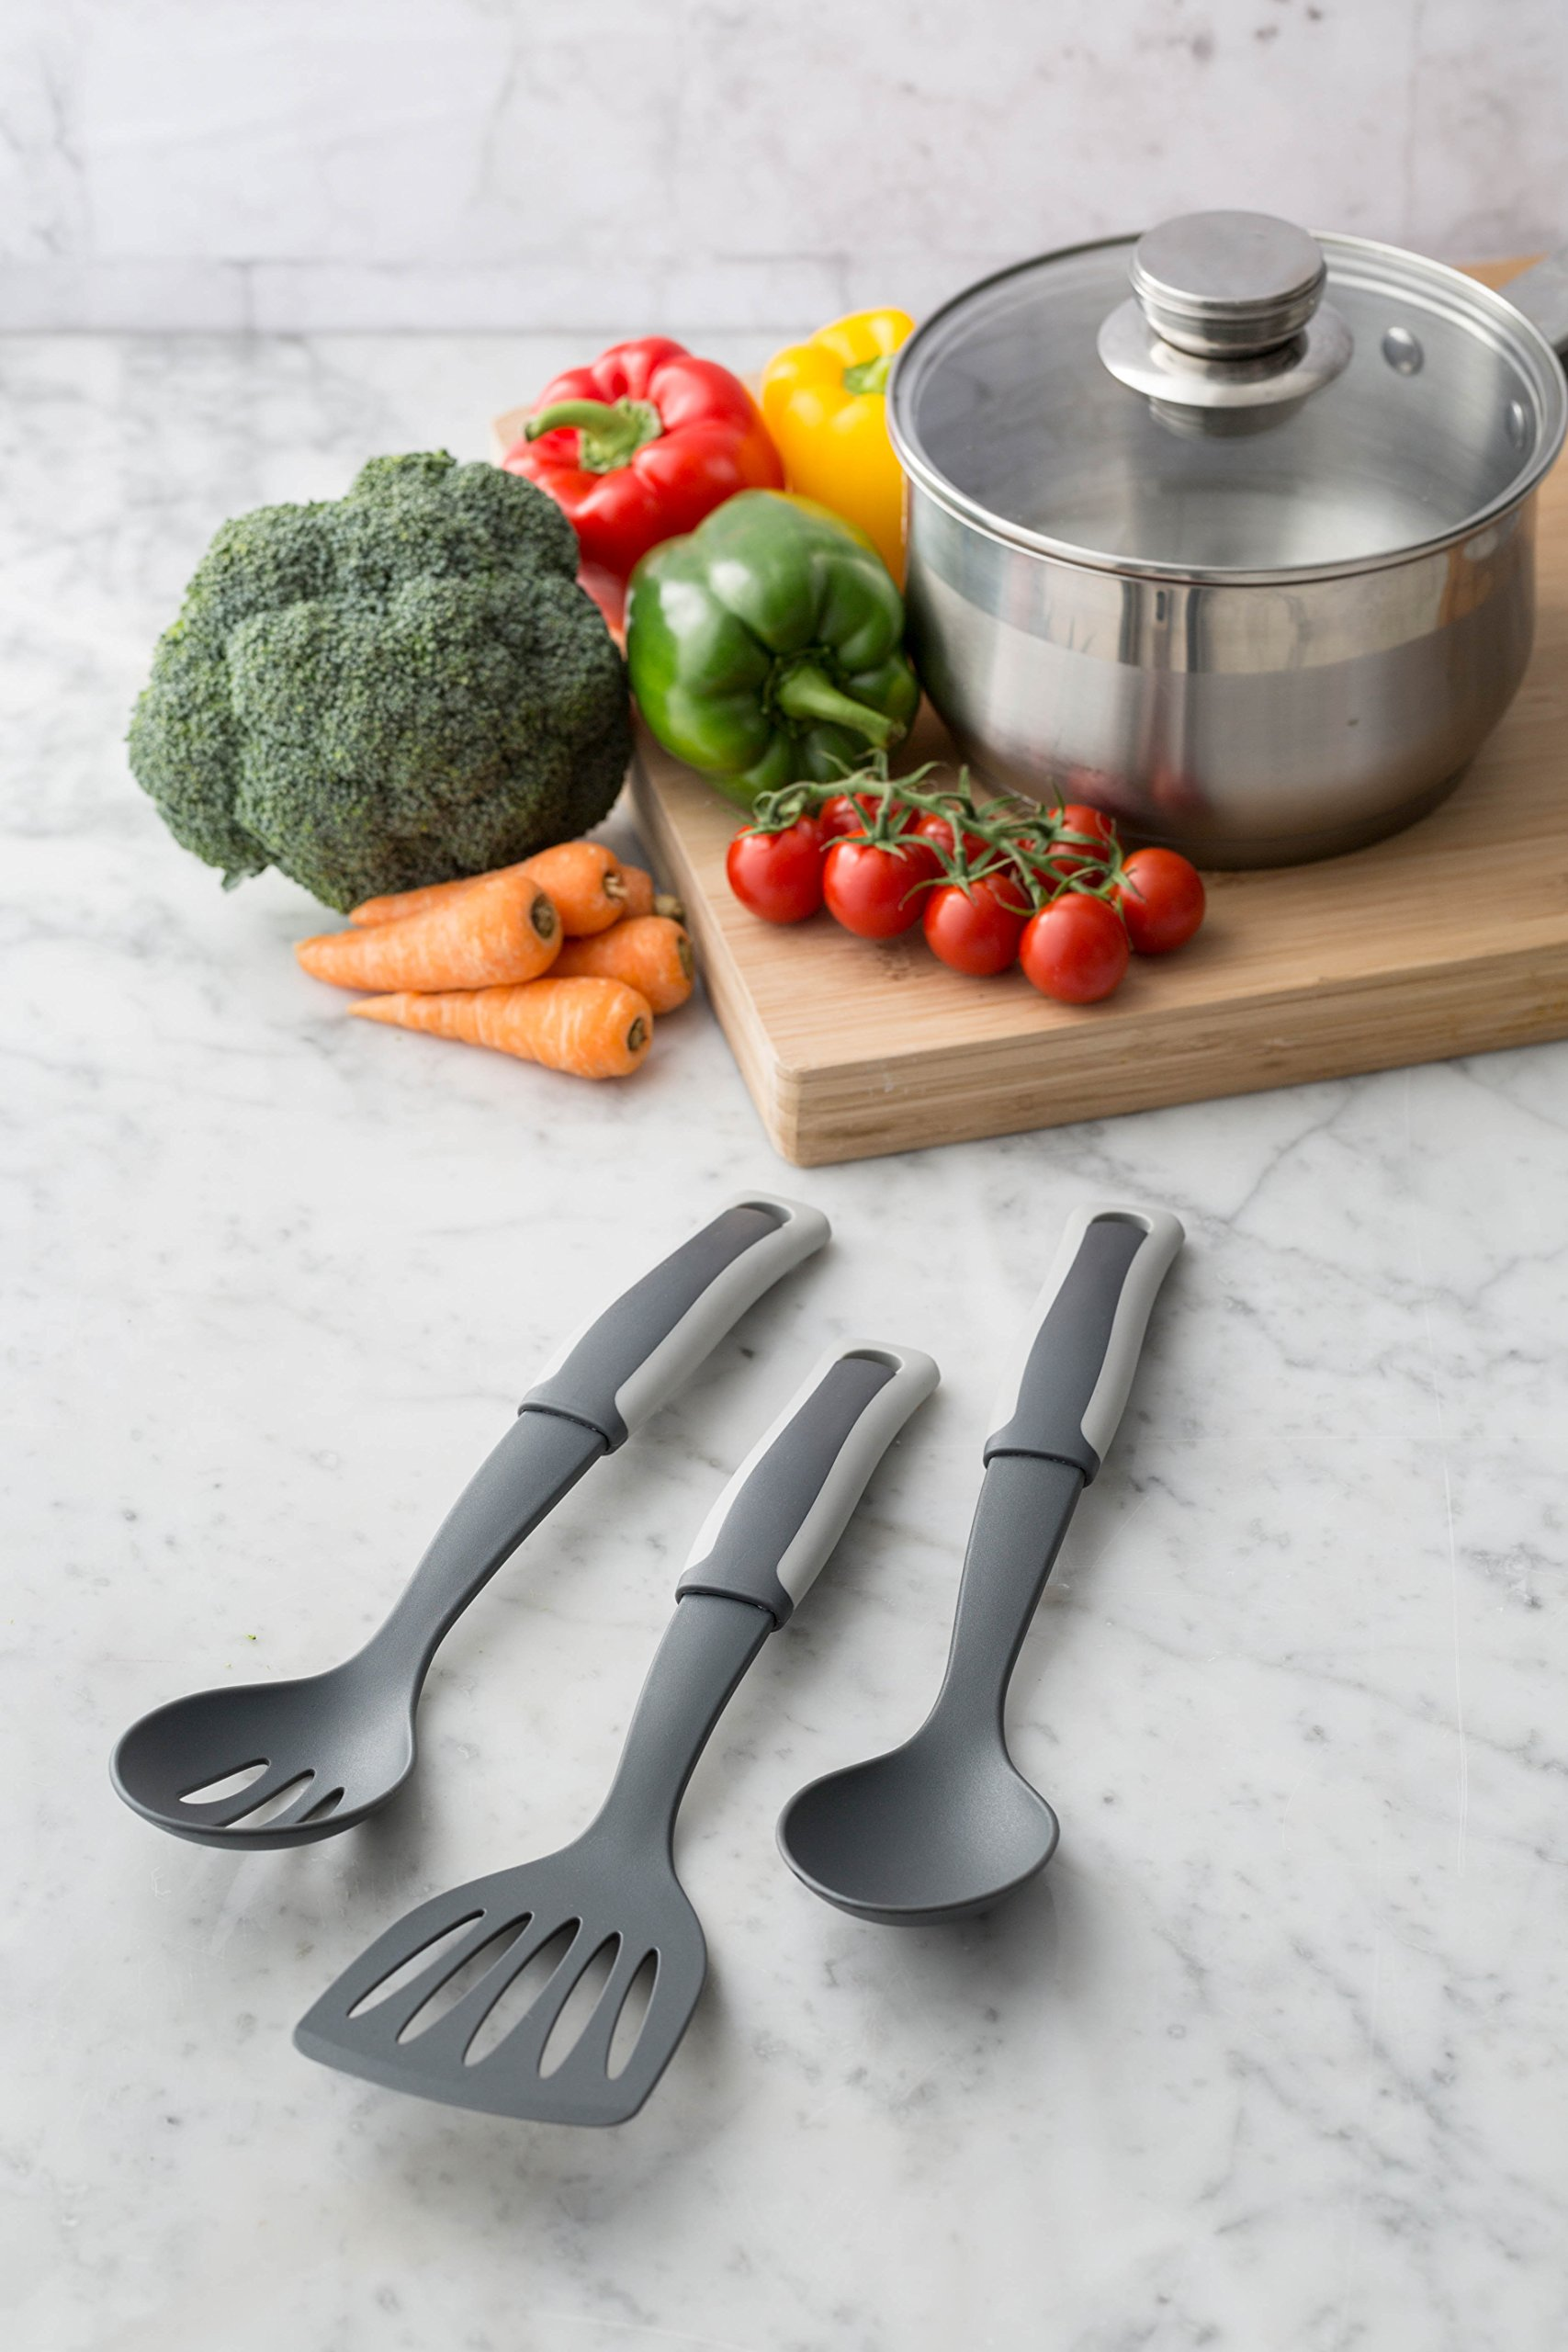 Typhoon Two Tone Collection Grey Nylon Masher, Ideal for Non-stick Cookware, Soft-grip Handle, Odor and Stain Resistant, Hanging Loop for Easy Storage by Typhoon (Image #4)